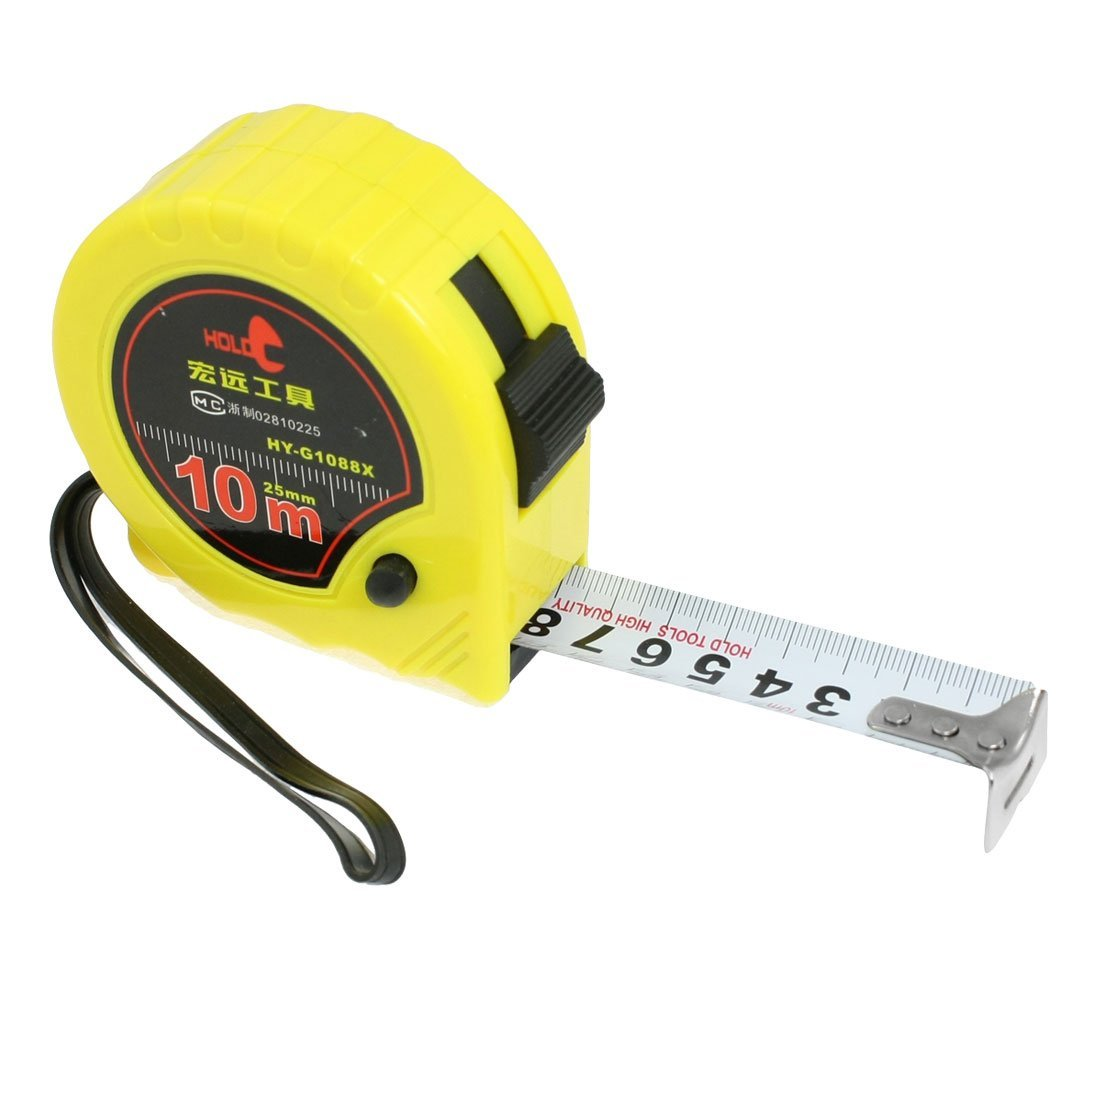 HOLD Self-Retract Flexible Metric Tape Measure Measuring ...